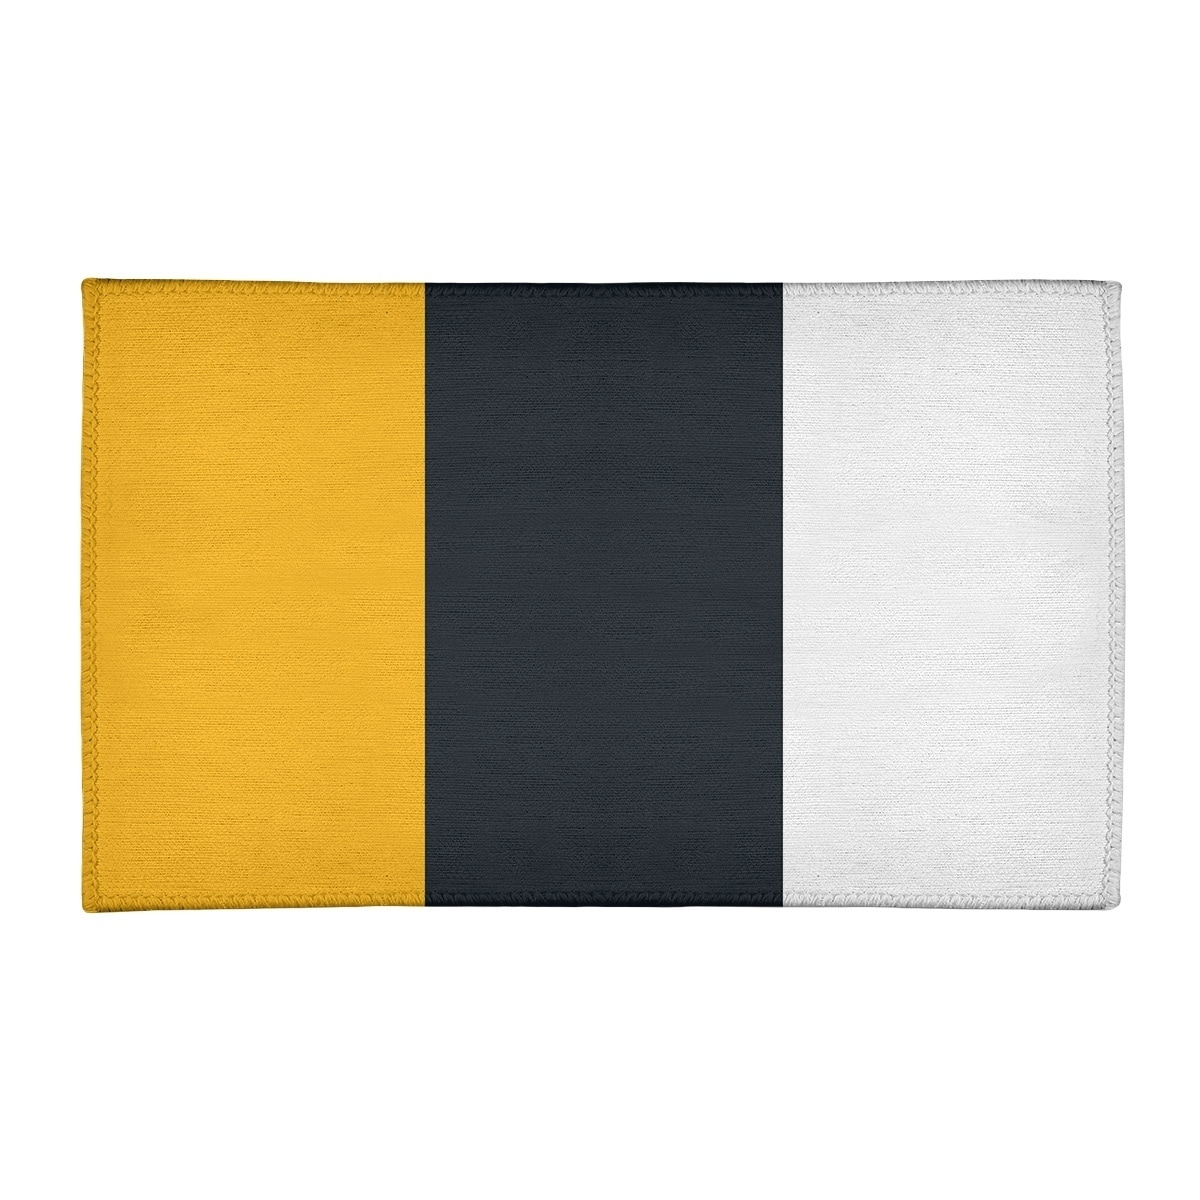 Pittsburgh Nfs Pittsburgh Football Stripes Area Rug Overstock 30266079